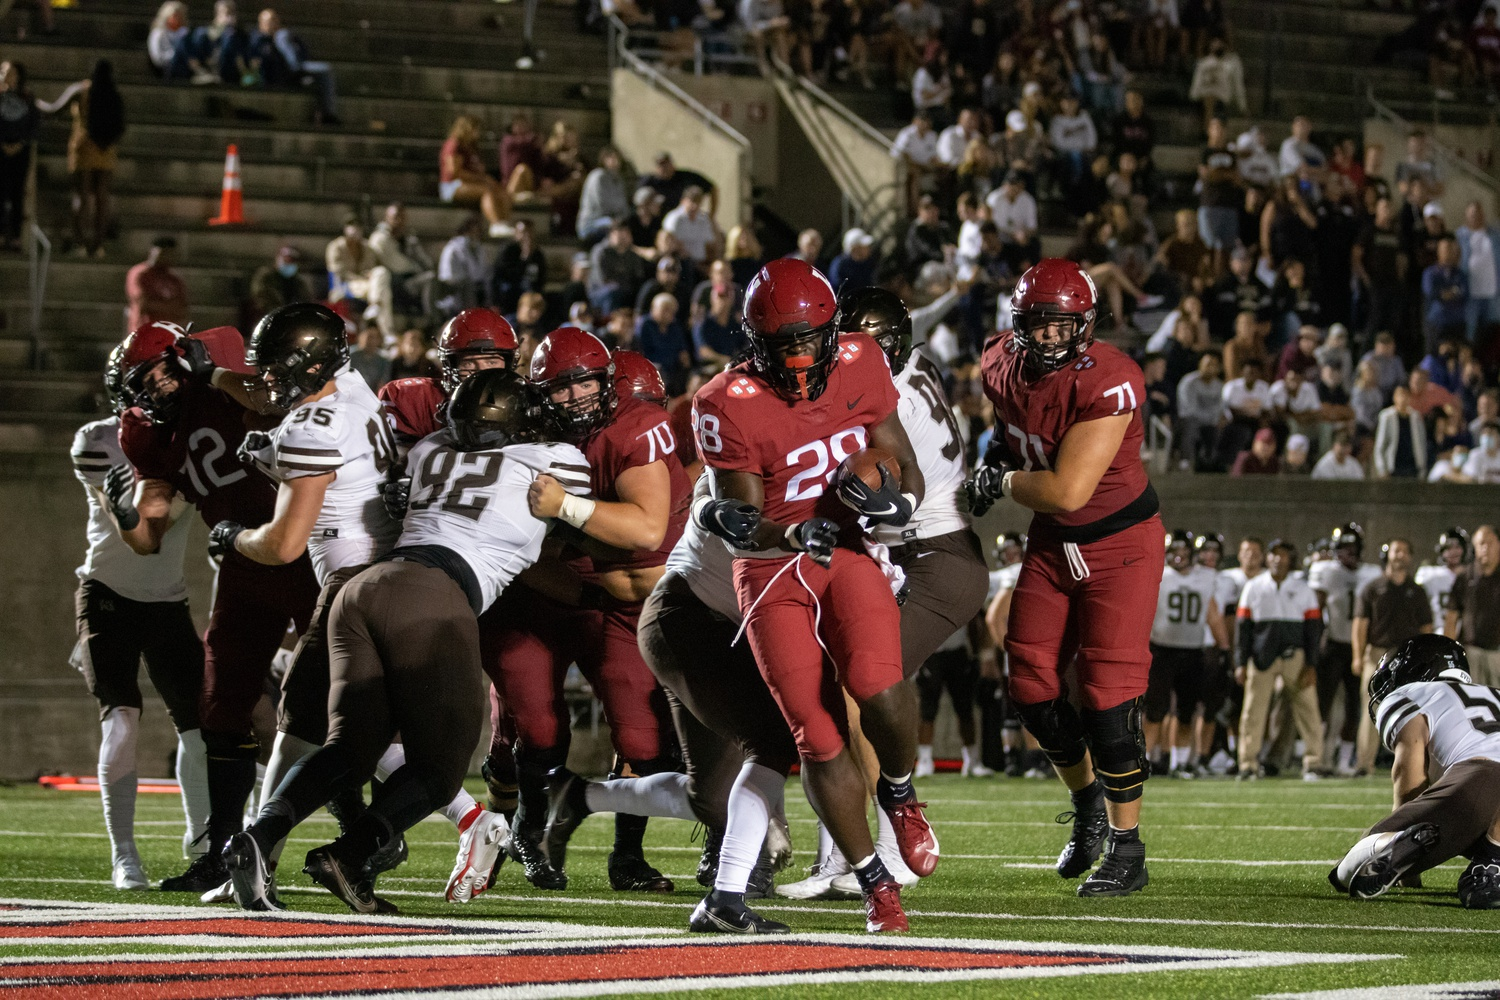 Sophomore running back Sone Ntoh punches in one of his two touchdowns on the night, which would go along with 30 yards rushing on nine carries.